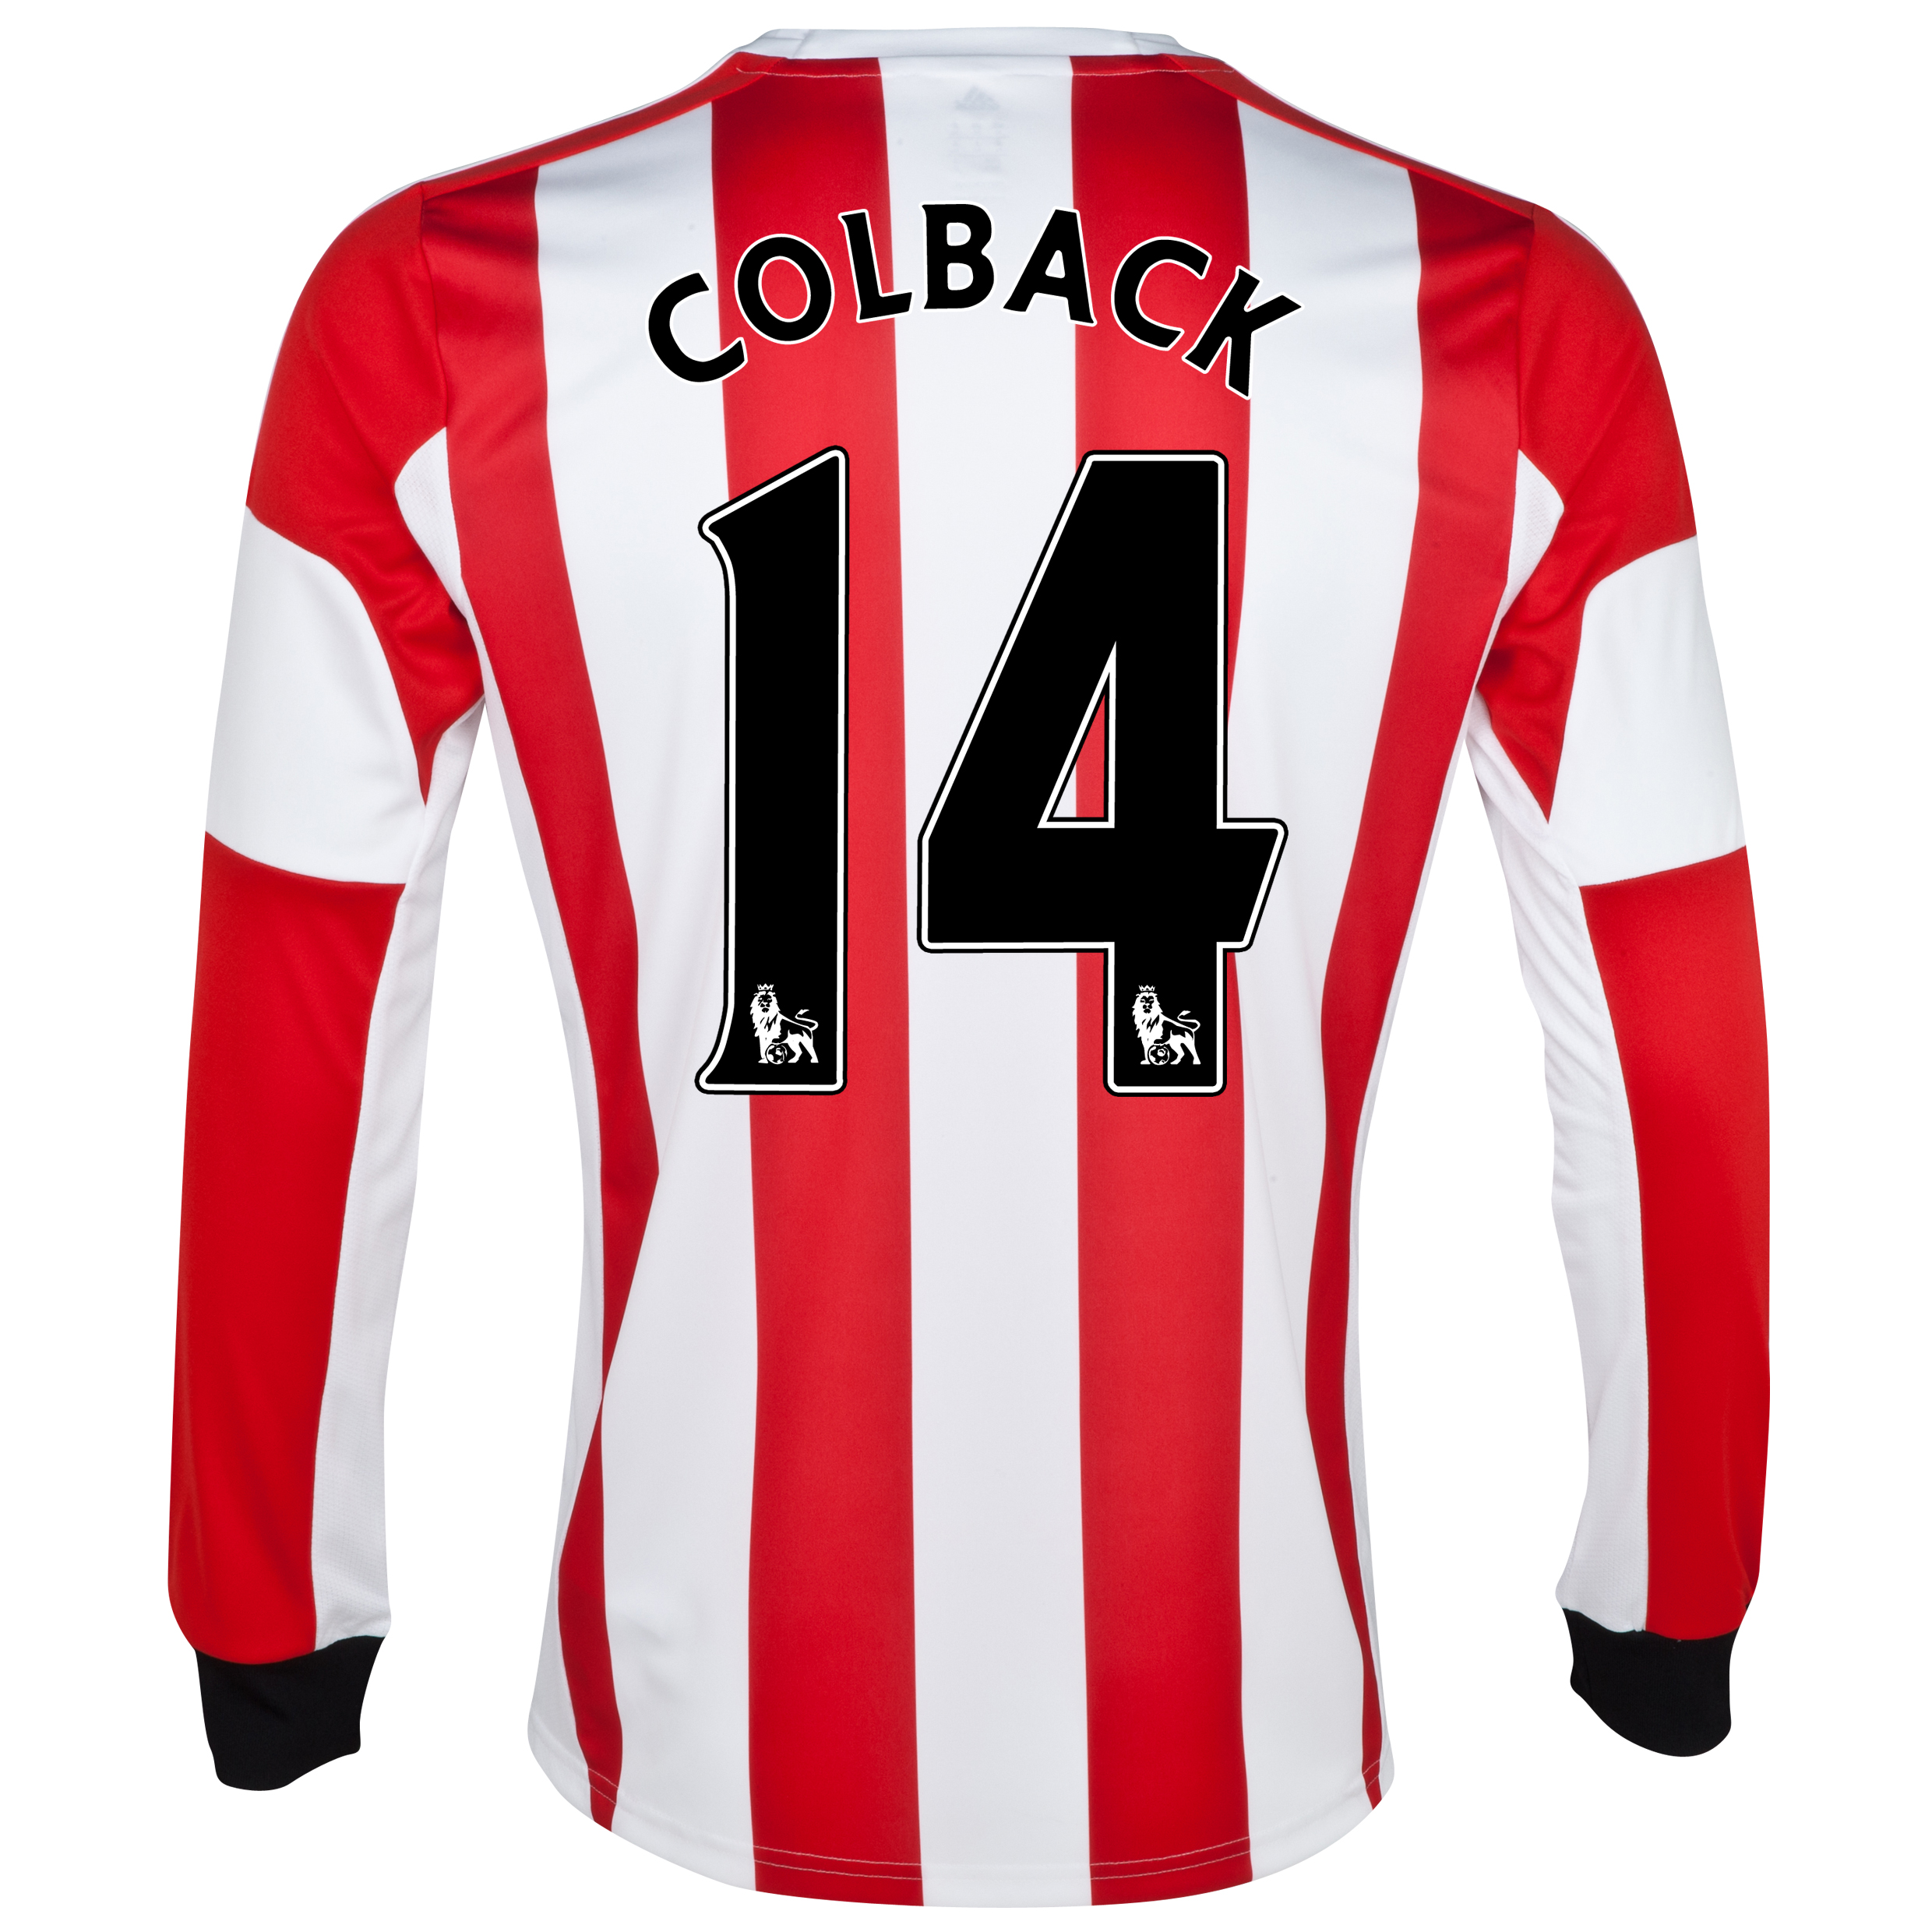 Sunderland Home Shirt 2013/14 - Long Sleeved  with Colback 14 printing